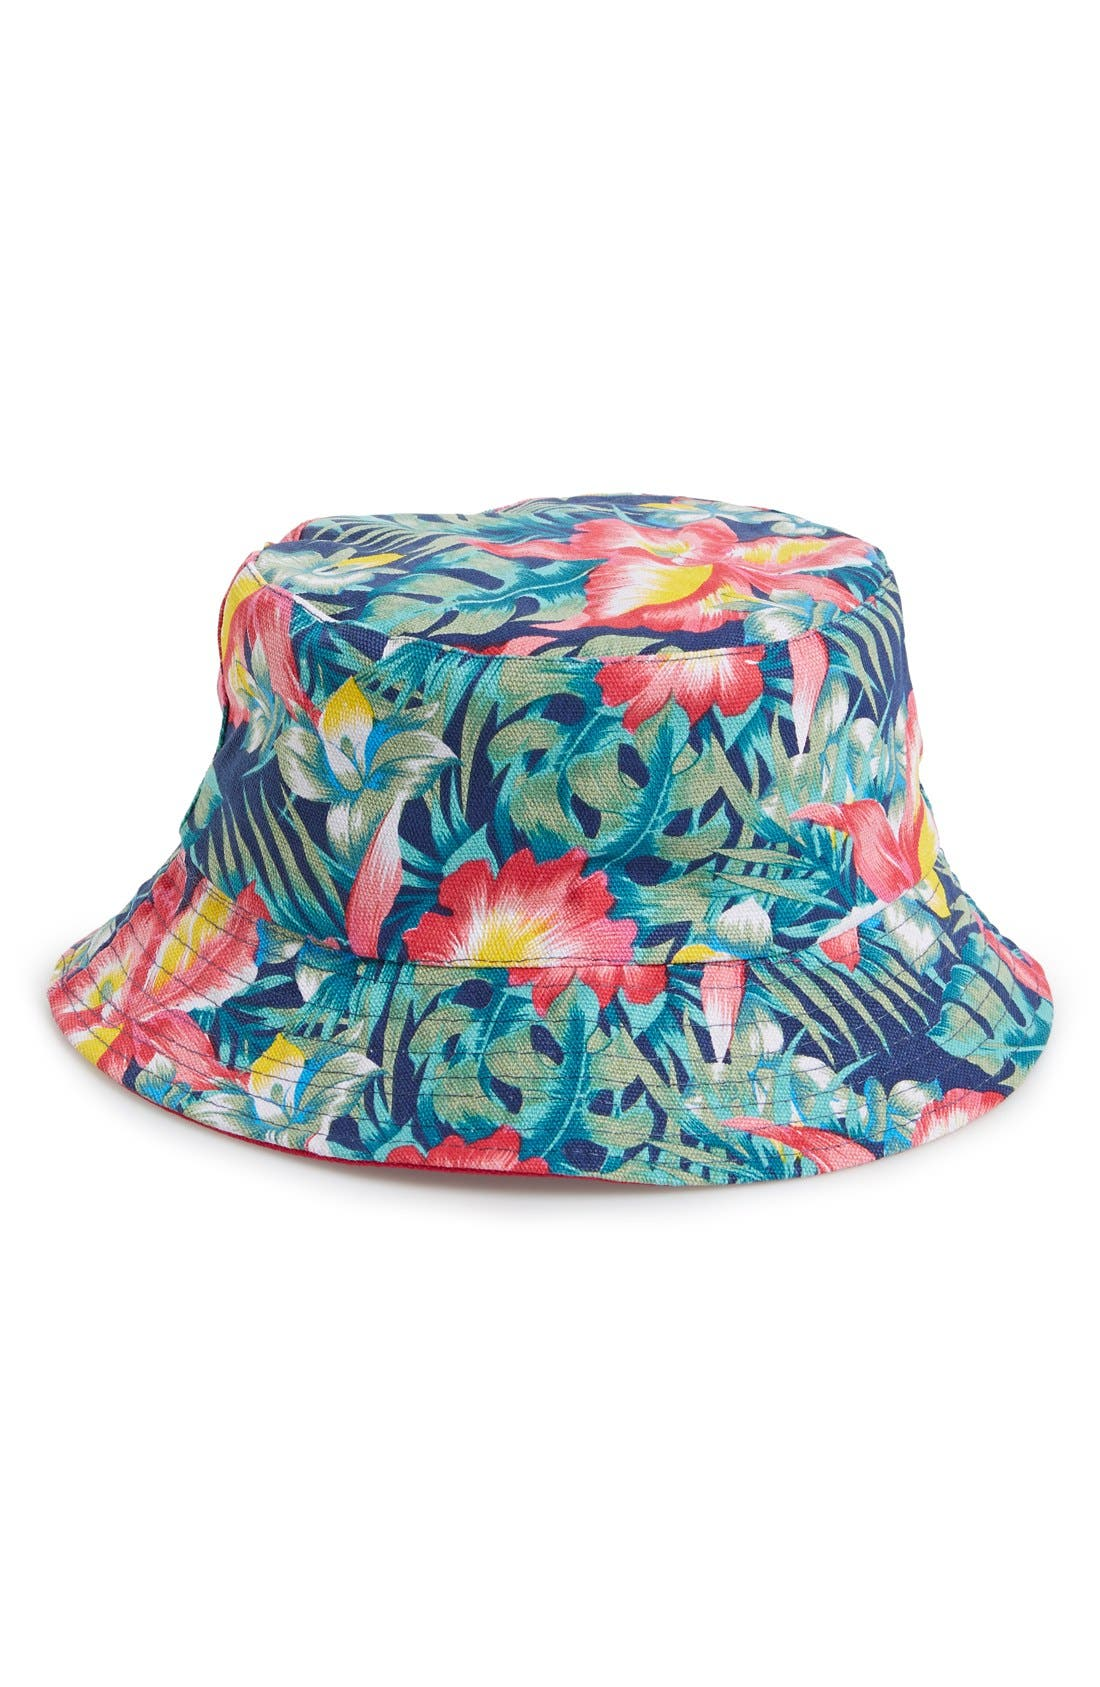 Alternate Image 1 Selected - Amici Accessories Reversible Bucket Hat